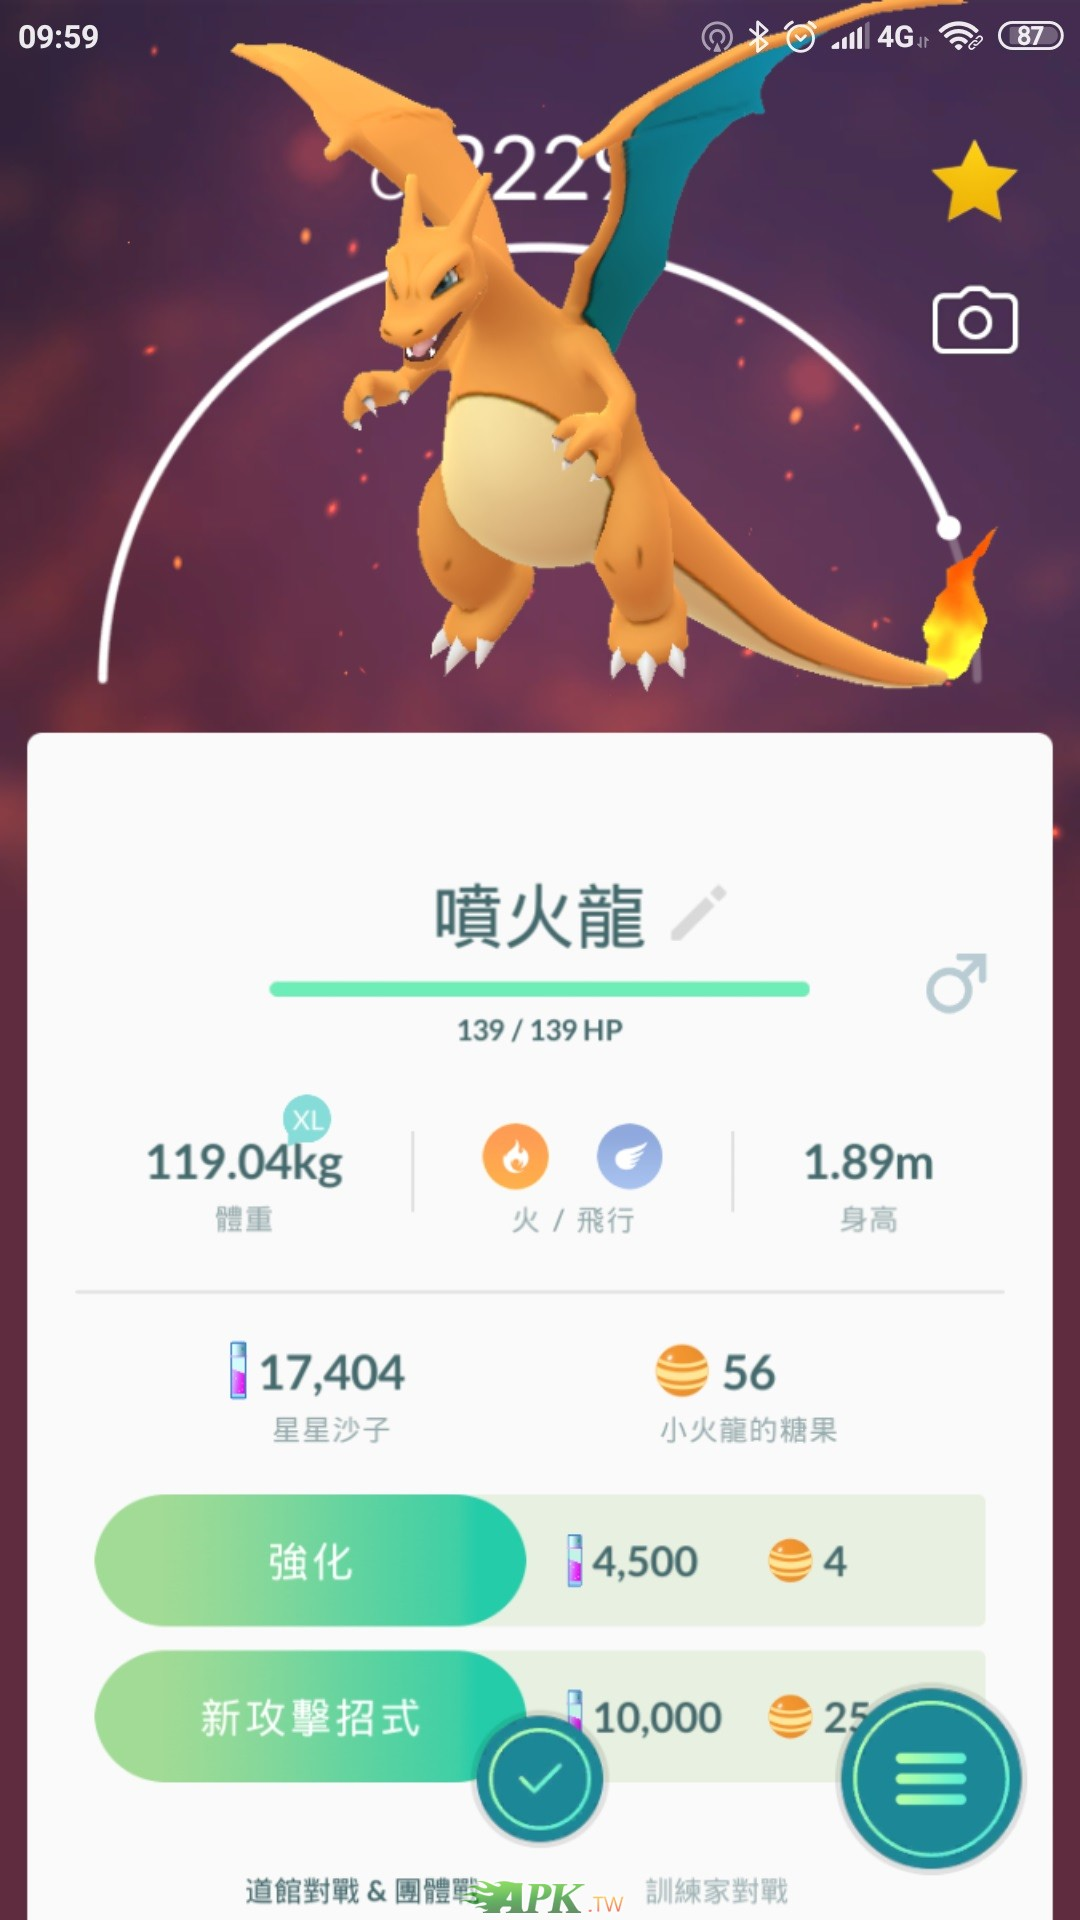 Screenshot_2019-05-08-09-59-01-512_com.nianticlabs.pokemongo.jpg